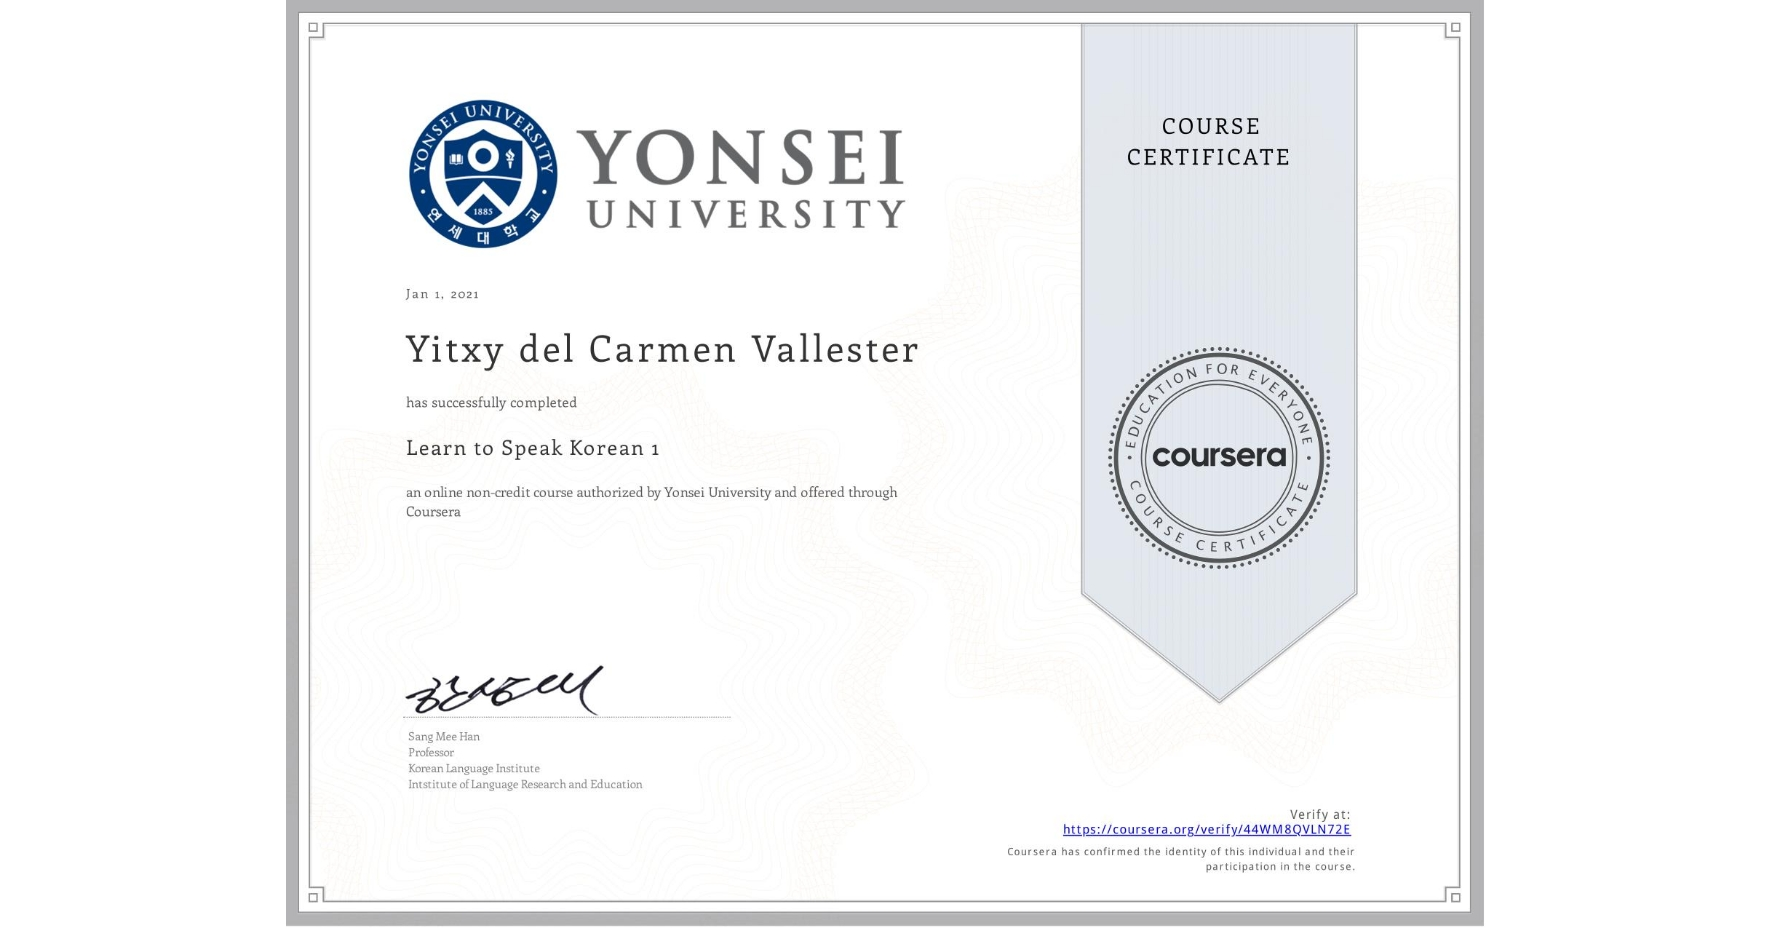 View certificate for Yitxy del Carmen Vallester, Learn to Speak Korean 1, an online non-credit course authorized by Yonsei University and offered through Coursera